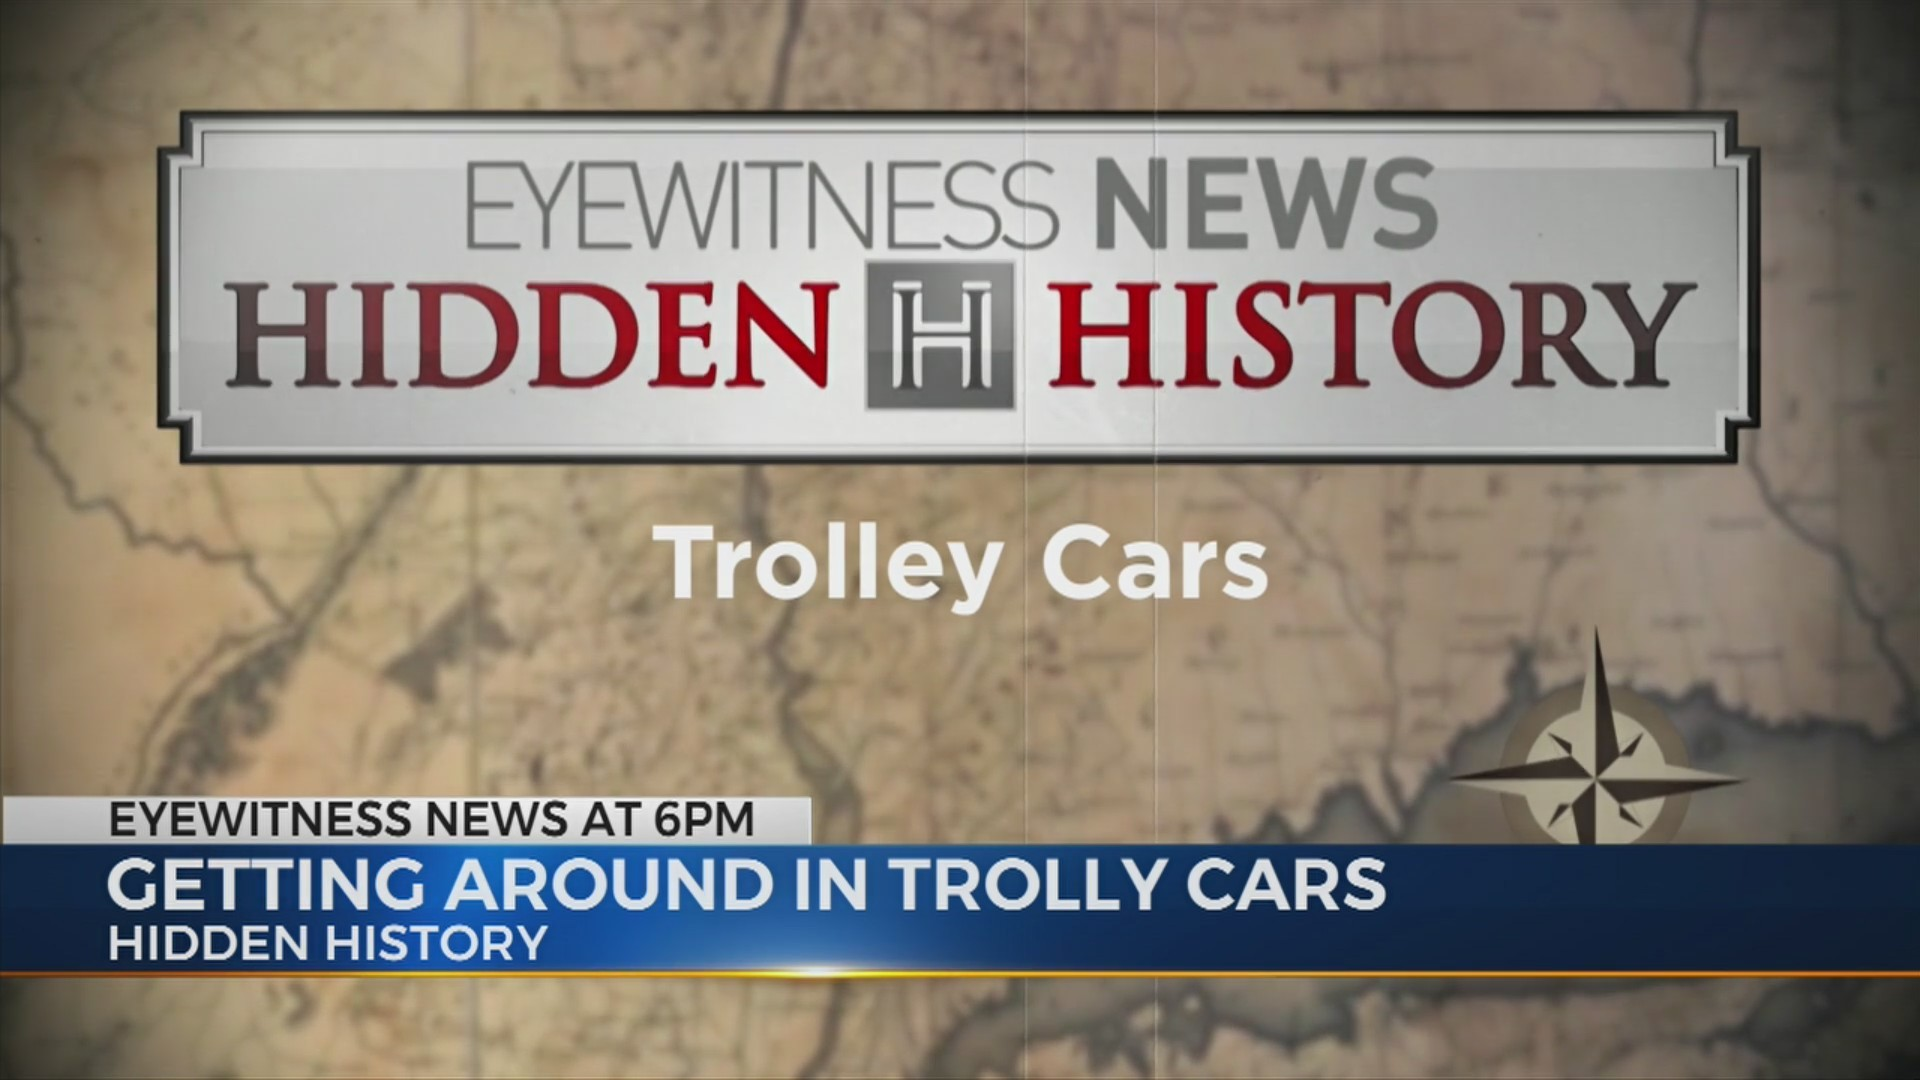 Hidden History - Trolley Cars